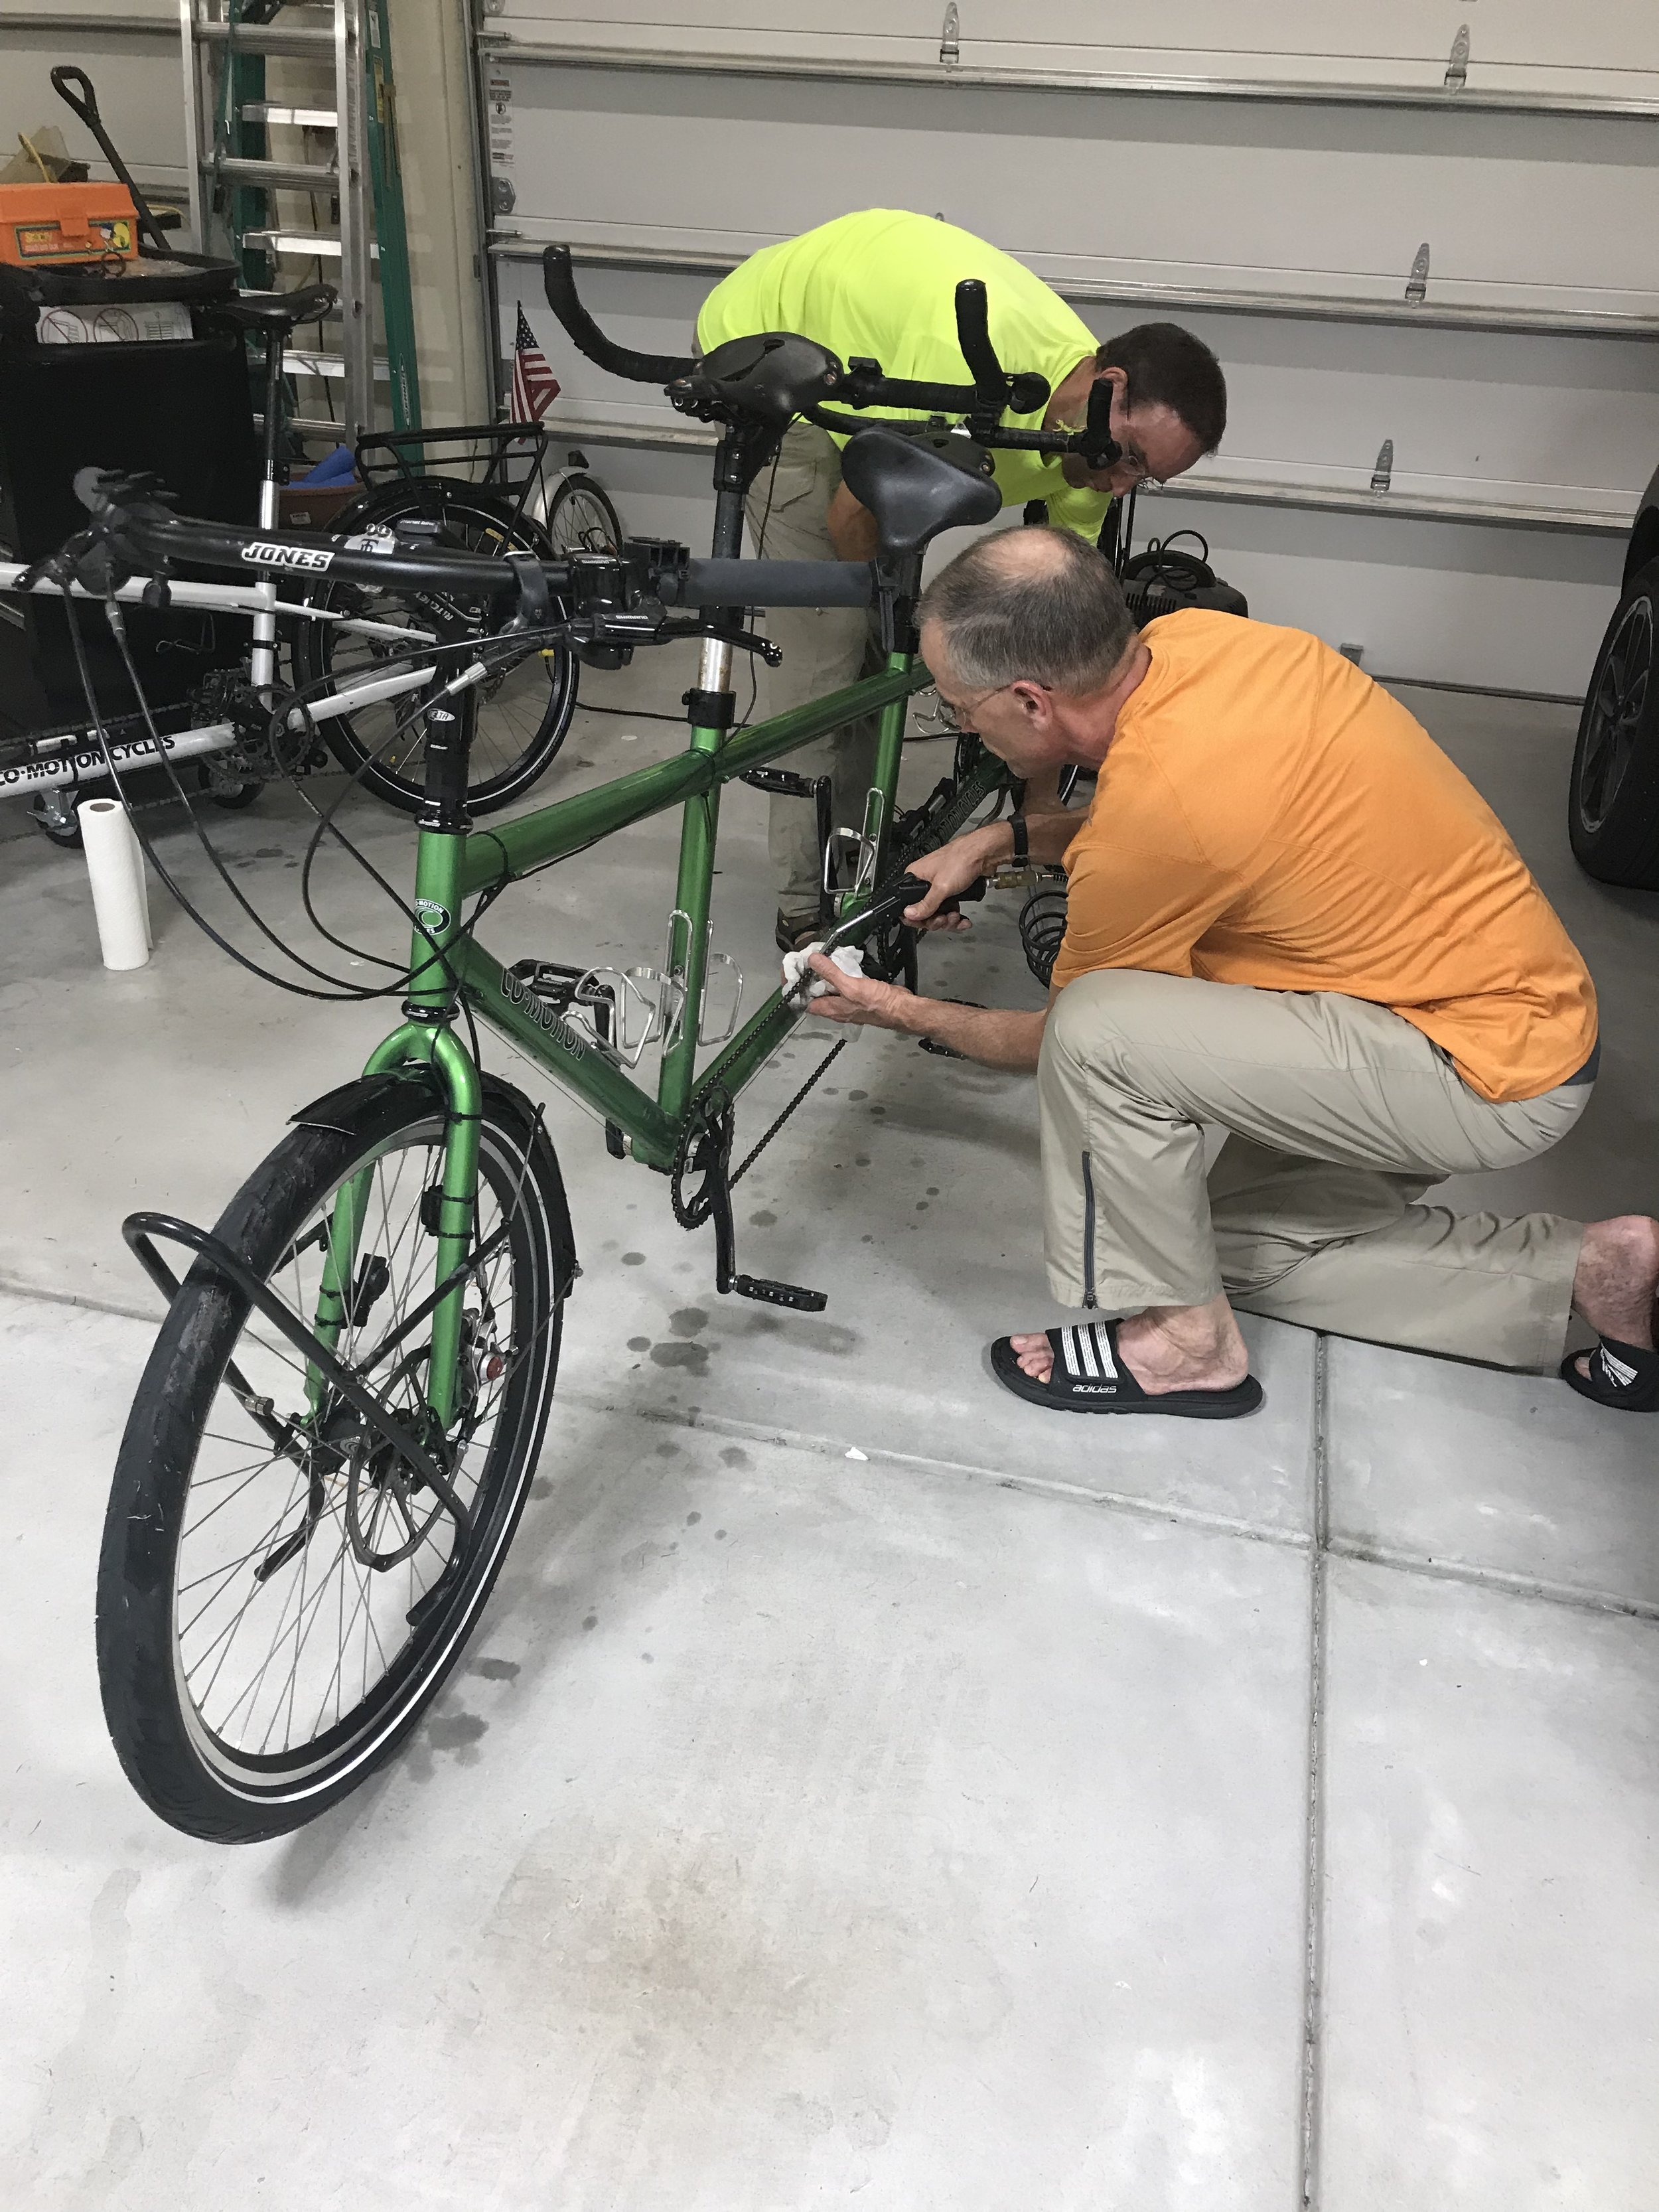 Bill helping Jerry to clean the grime and debris from our bikes after the miles on trails and roads.